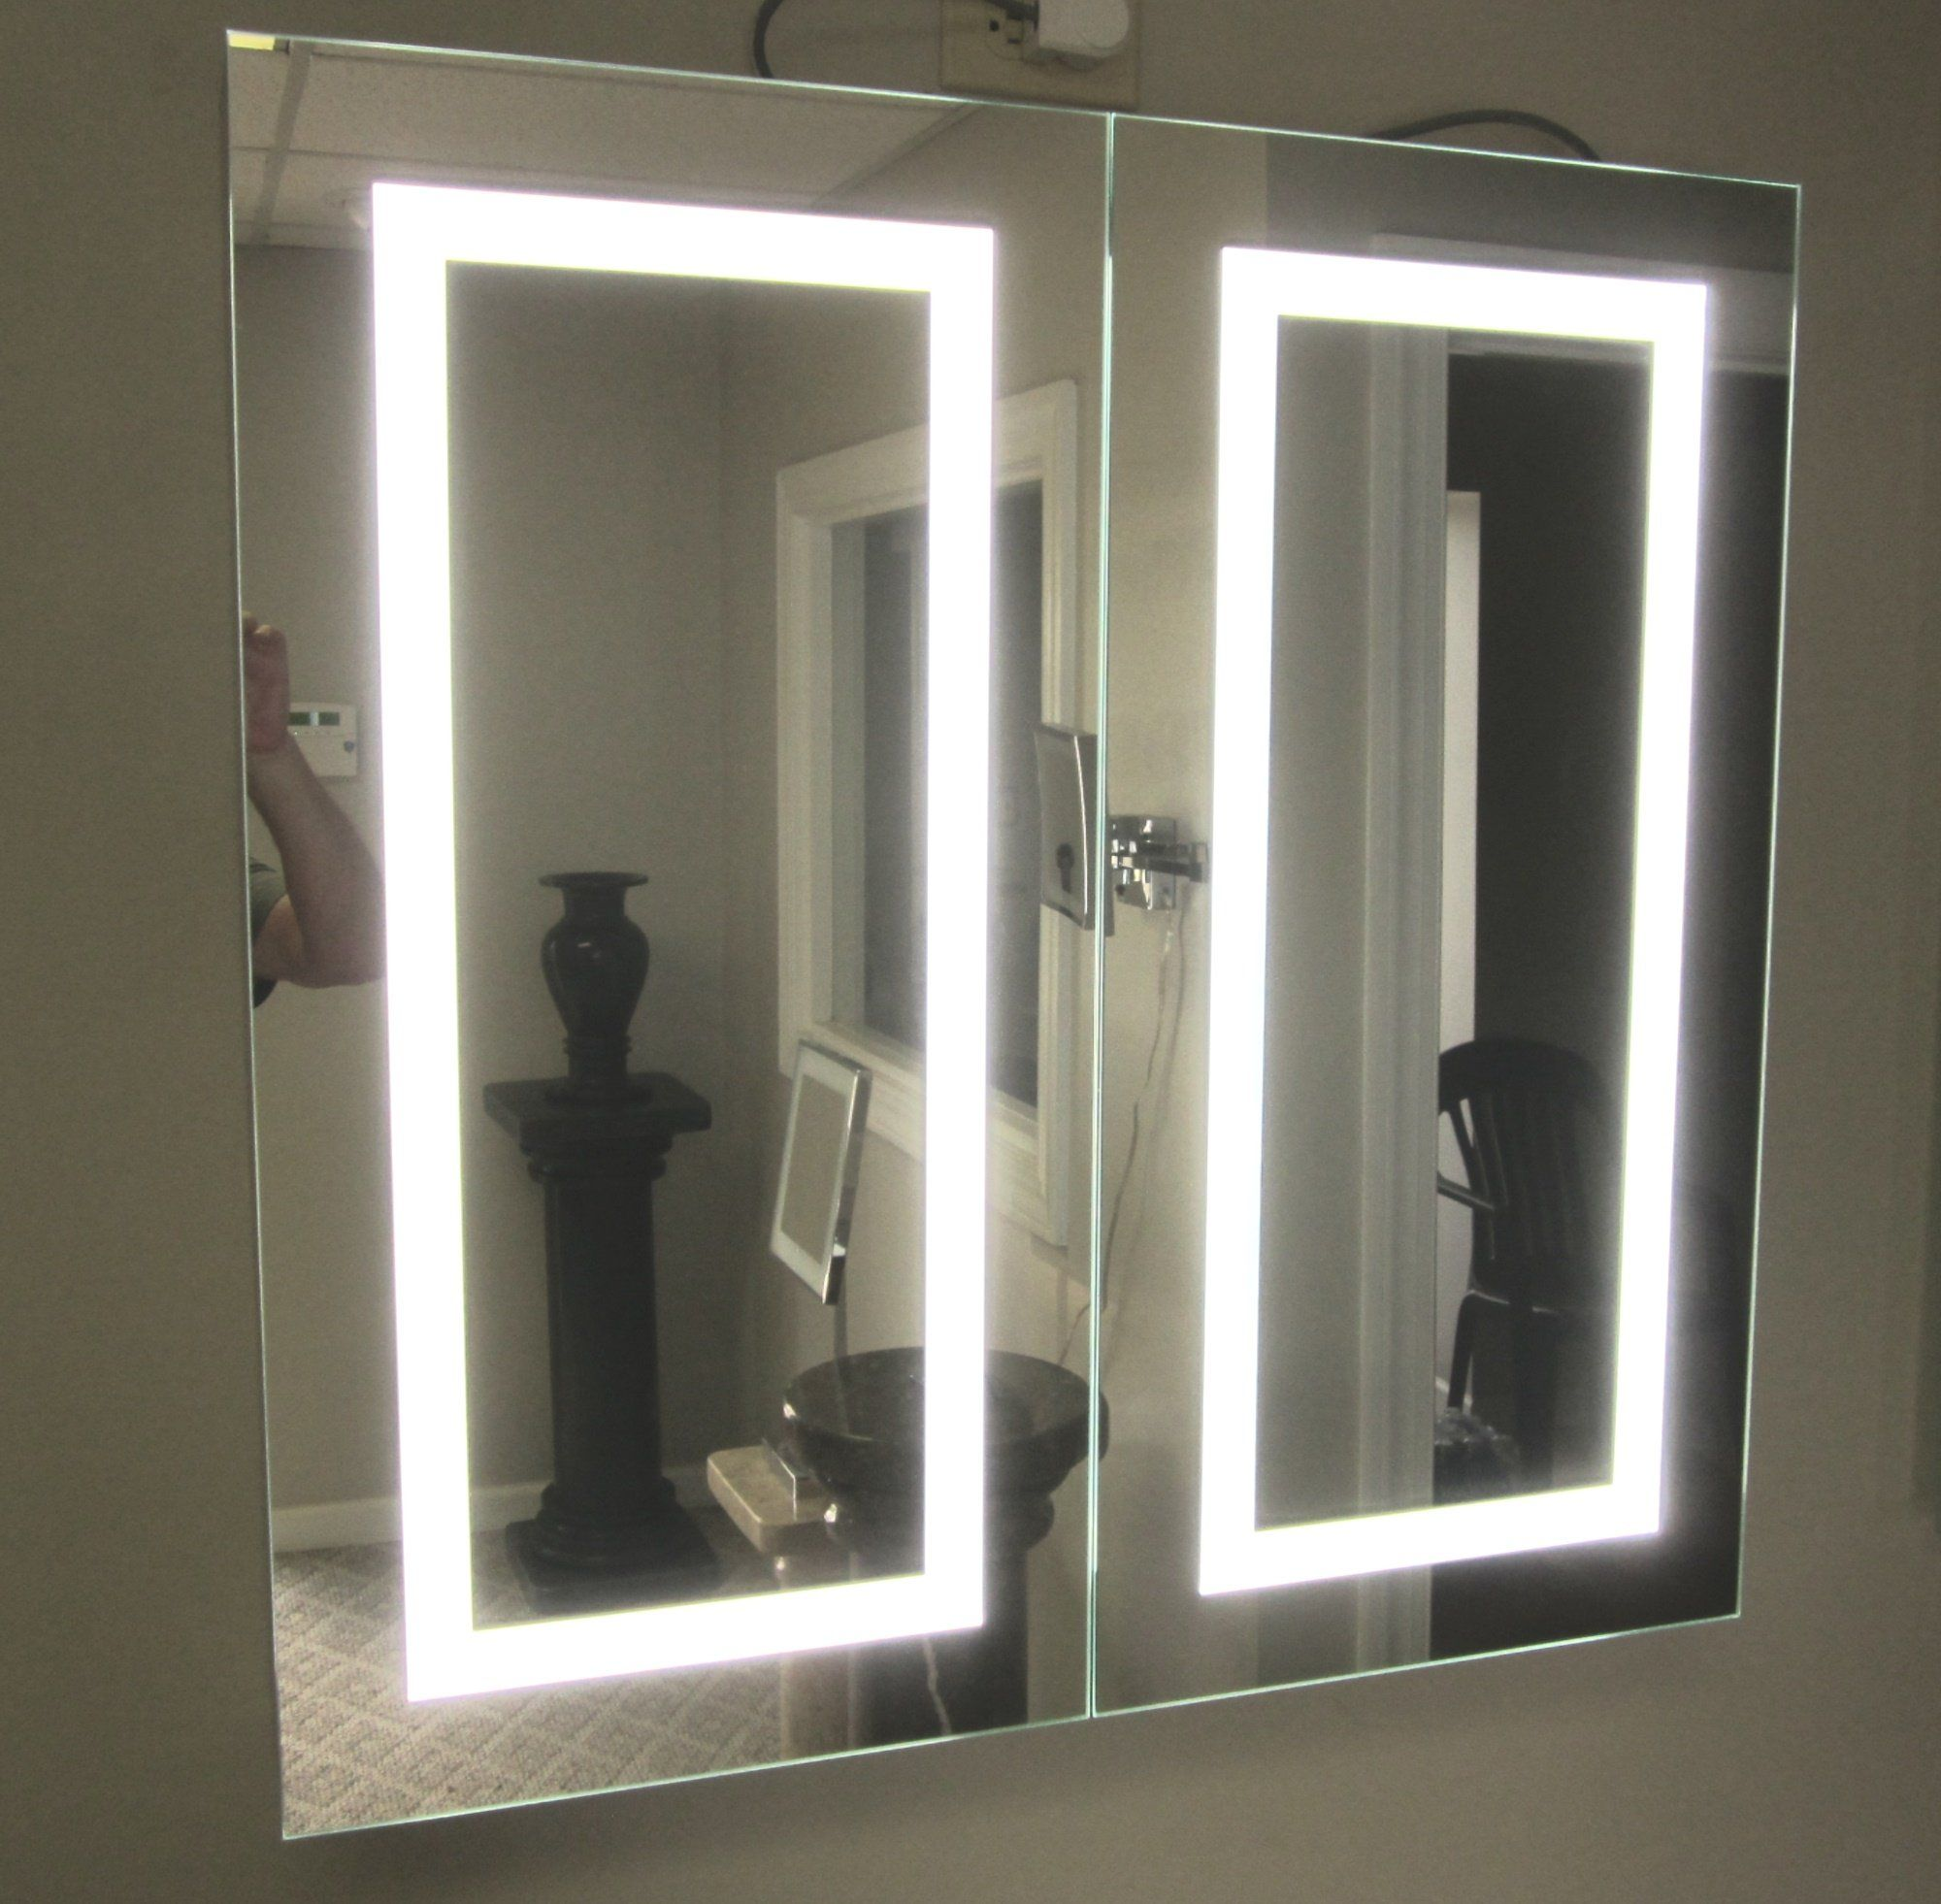 Lighted Twin Door Led Bathroom Mirror Medicine Cabinet 32 Wide X 32 Tall Surface Mounted Hinged On Left And Right 6 000 Kelvin Medicine Cabinet Mirror Lighted Medicine Cabinet Bathroom Mirror Cabinet